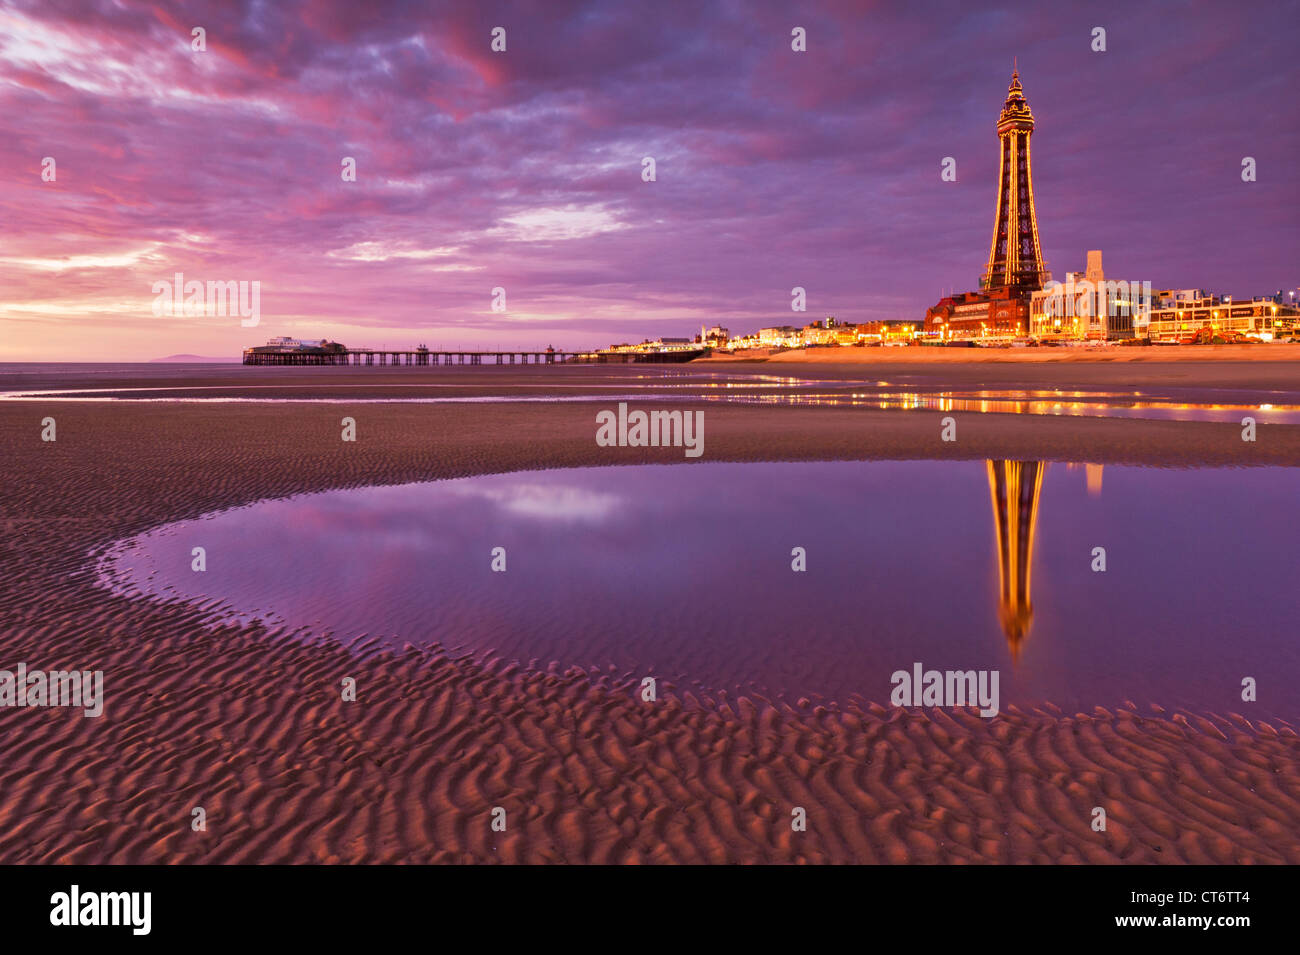 Blackpool tower reflected in a tide pool and seafront amusements illuminated at sunset Lancashire England GB UK - Stock Image